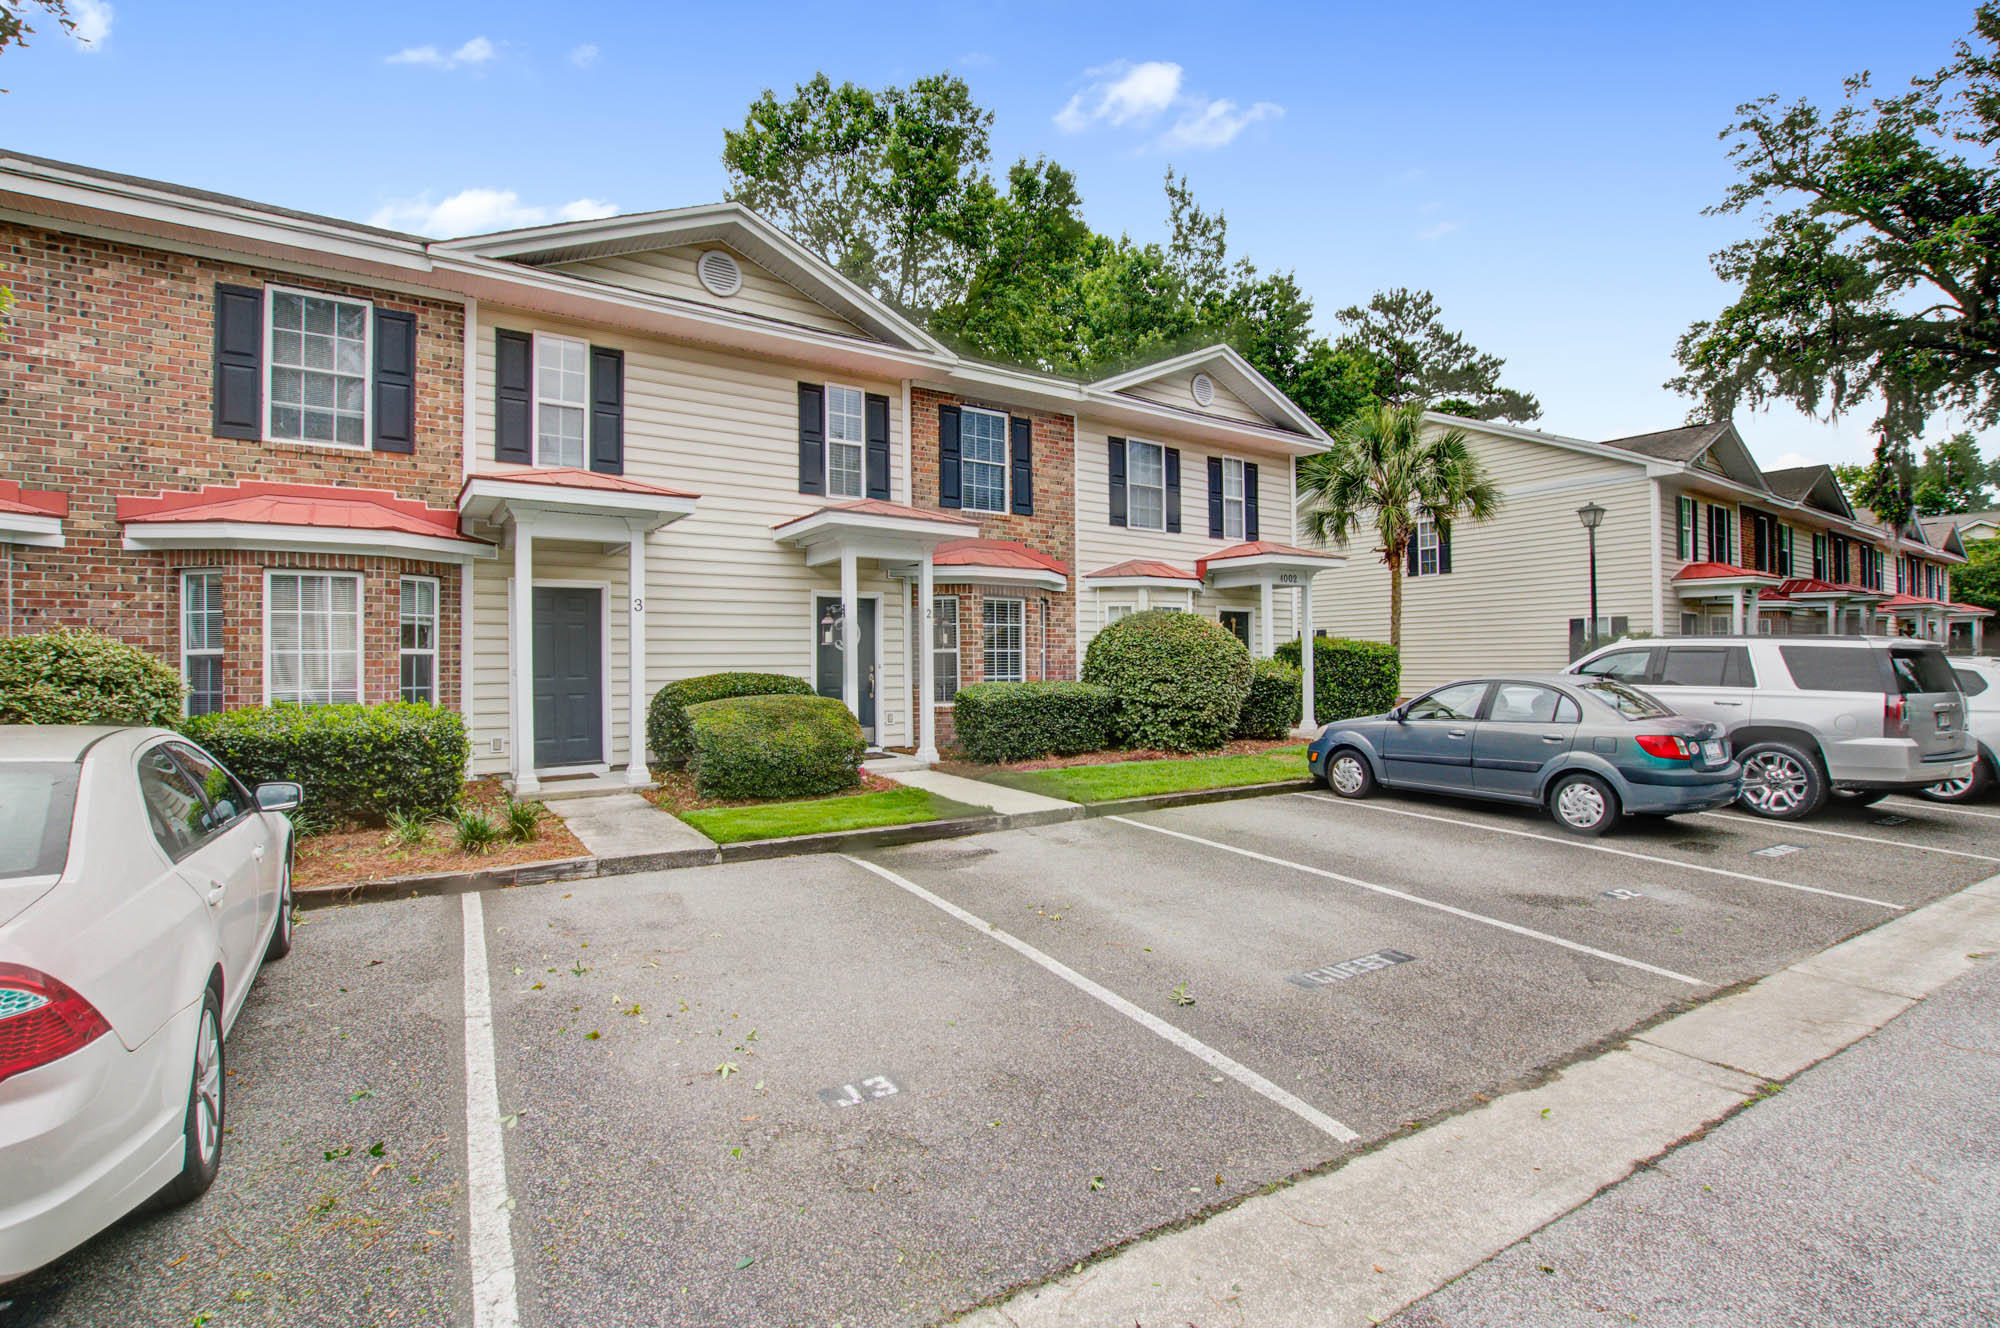 Radcliffe Place Homes For Sale - 4002 Radcliffe, Charleston, SC - 1